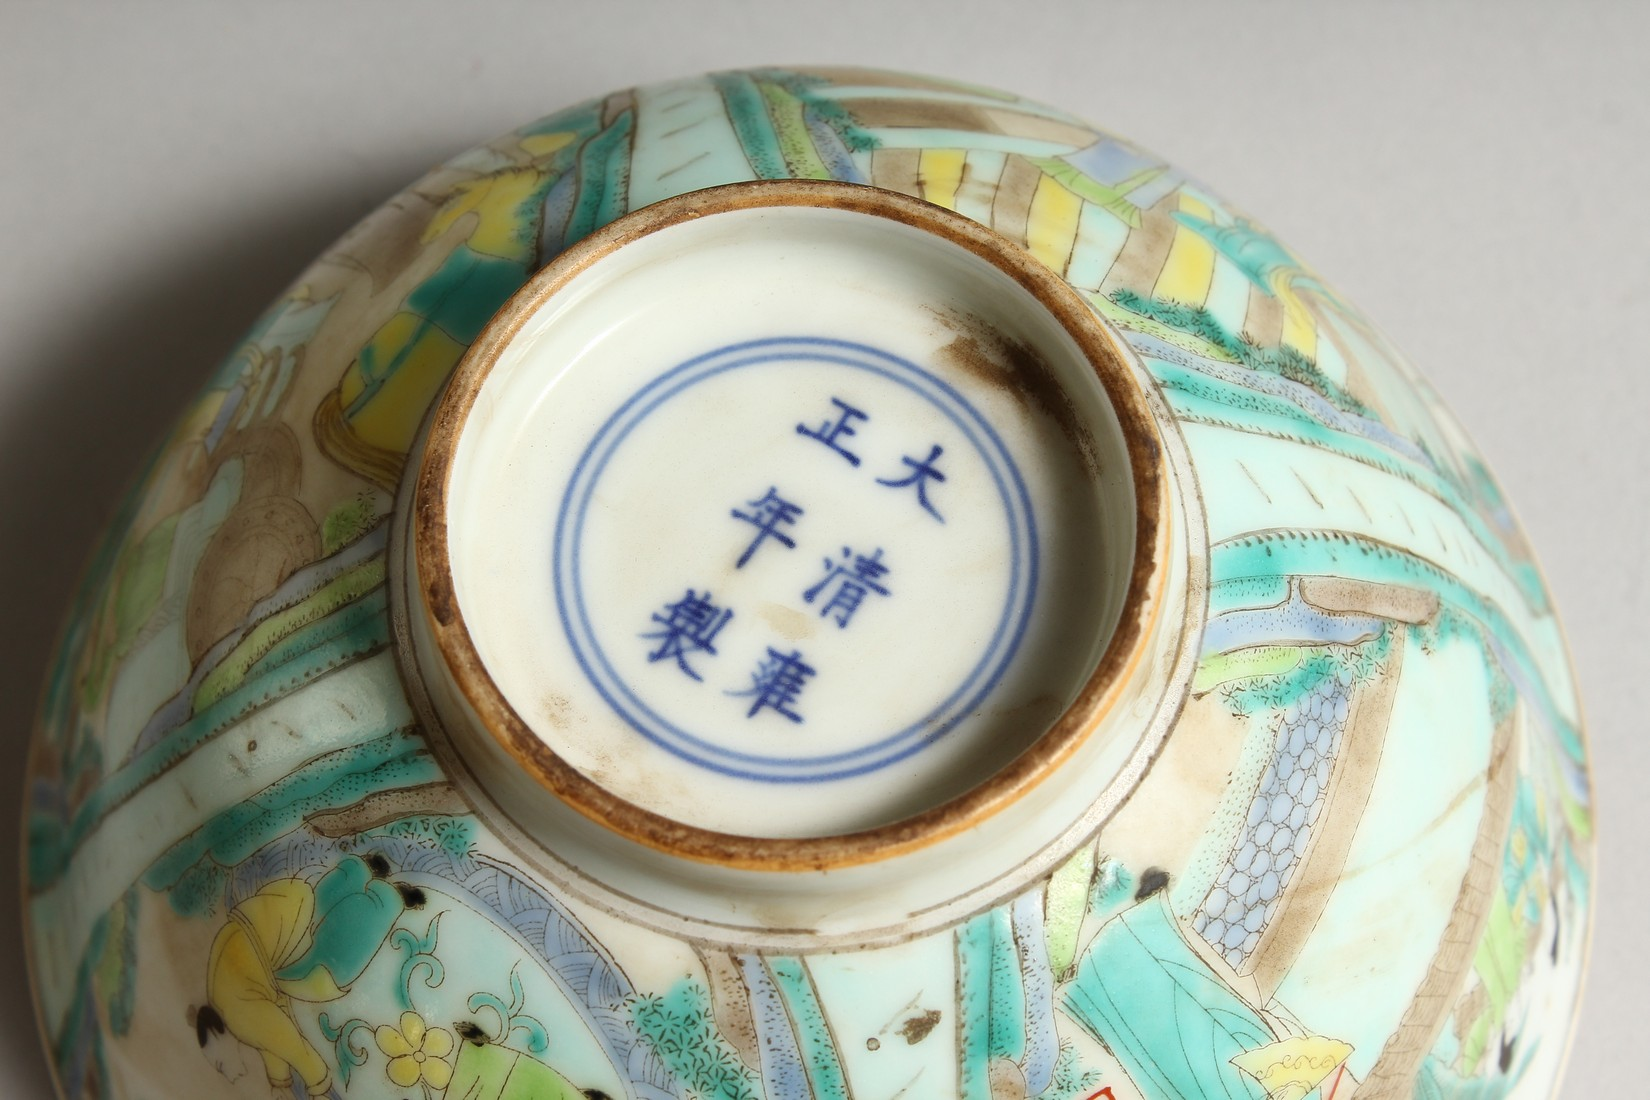 A CHINESE FAMILLE VERTE PORCELAIN BOWL, painted with figures in a landscape. 6.25ins diameter. - Image 6 of 6